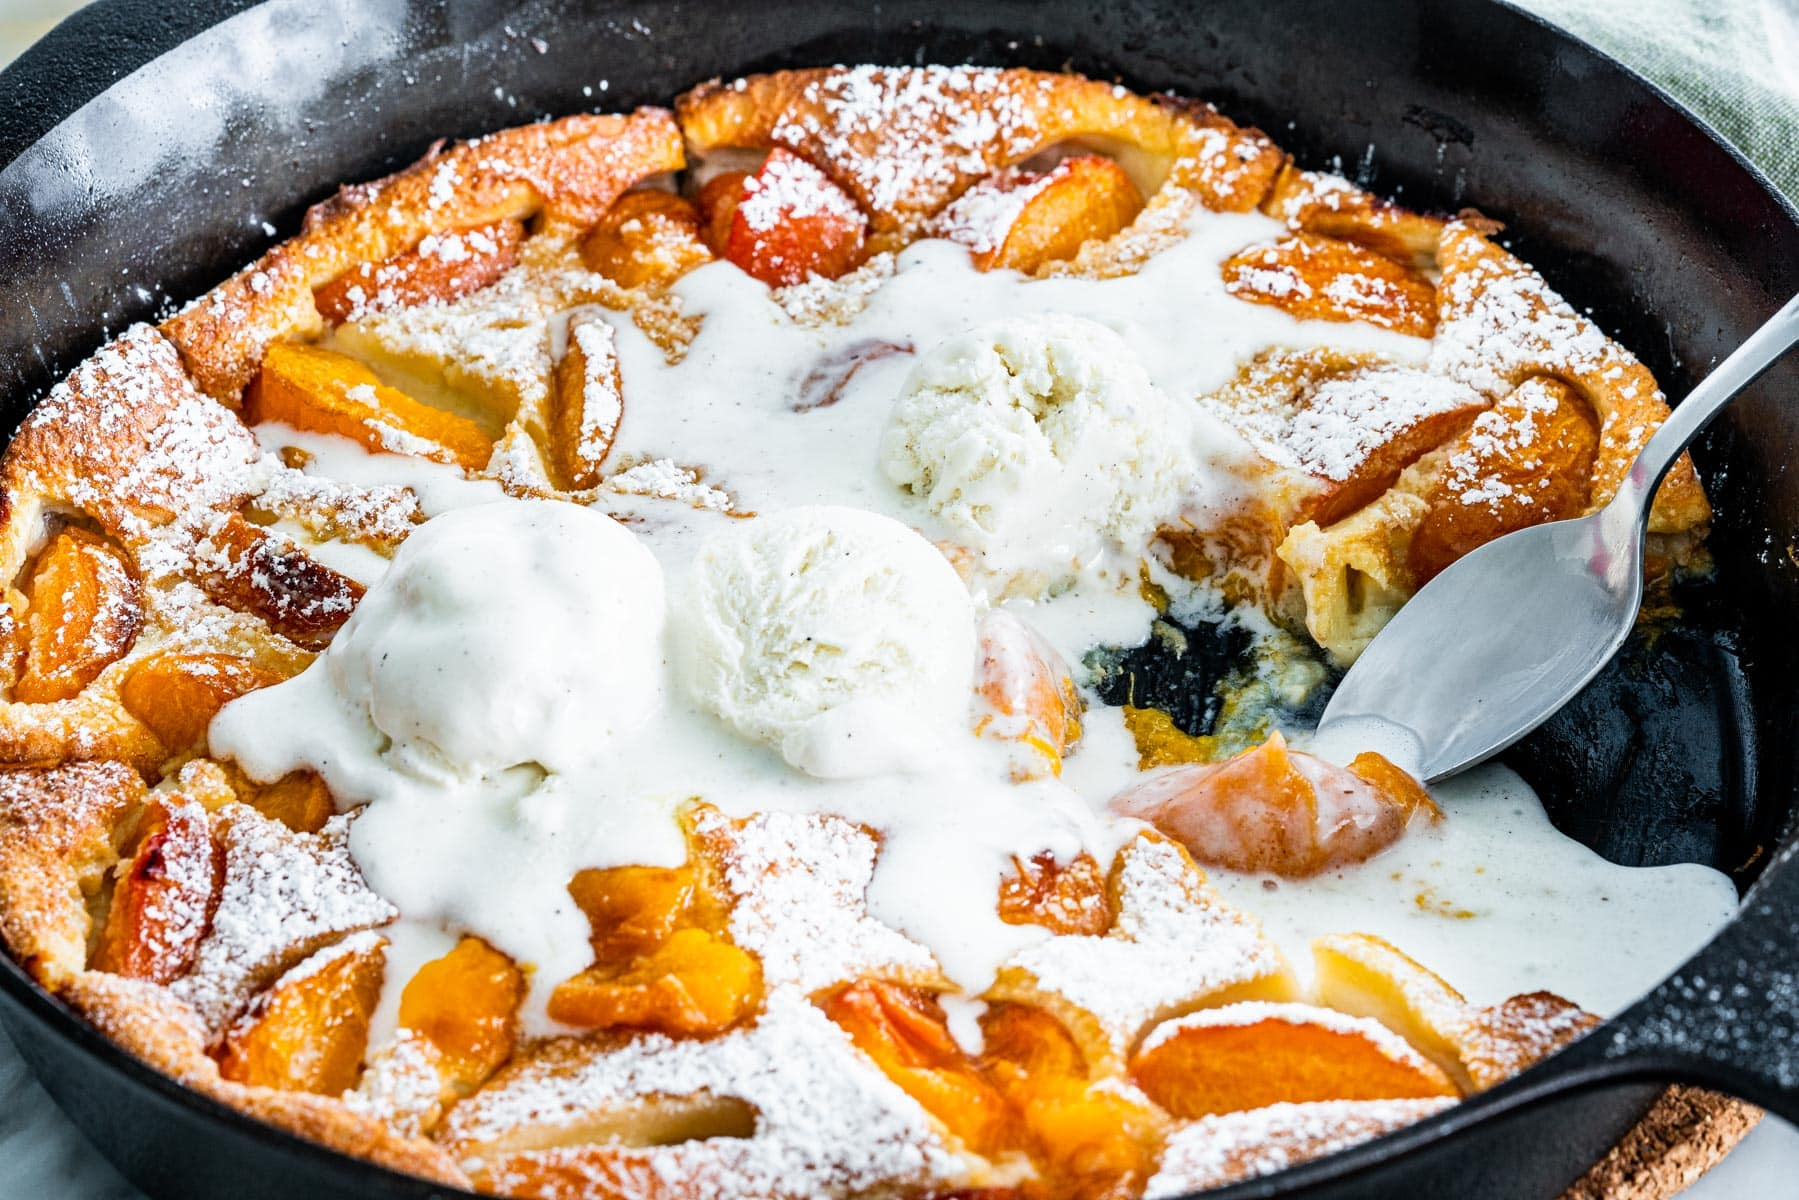 side view shot of apricot clafoutis in a black skillet with a couple scoops of ice cream on it